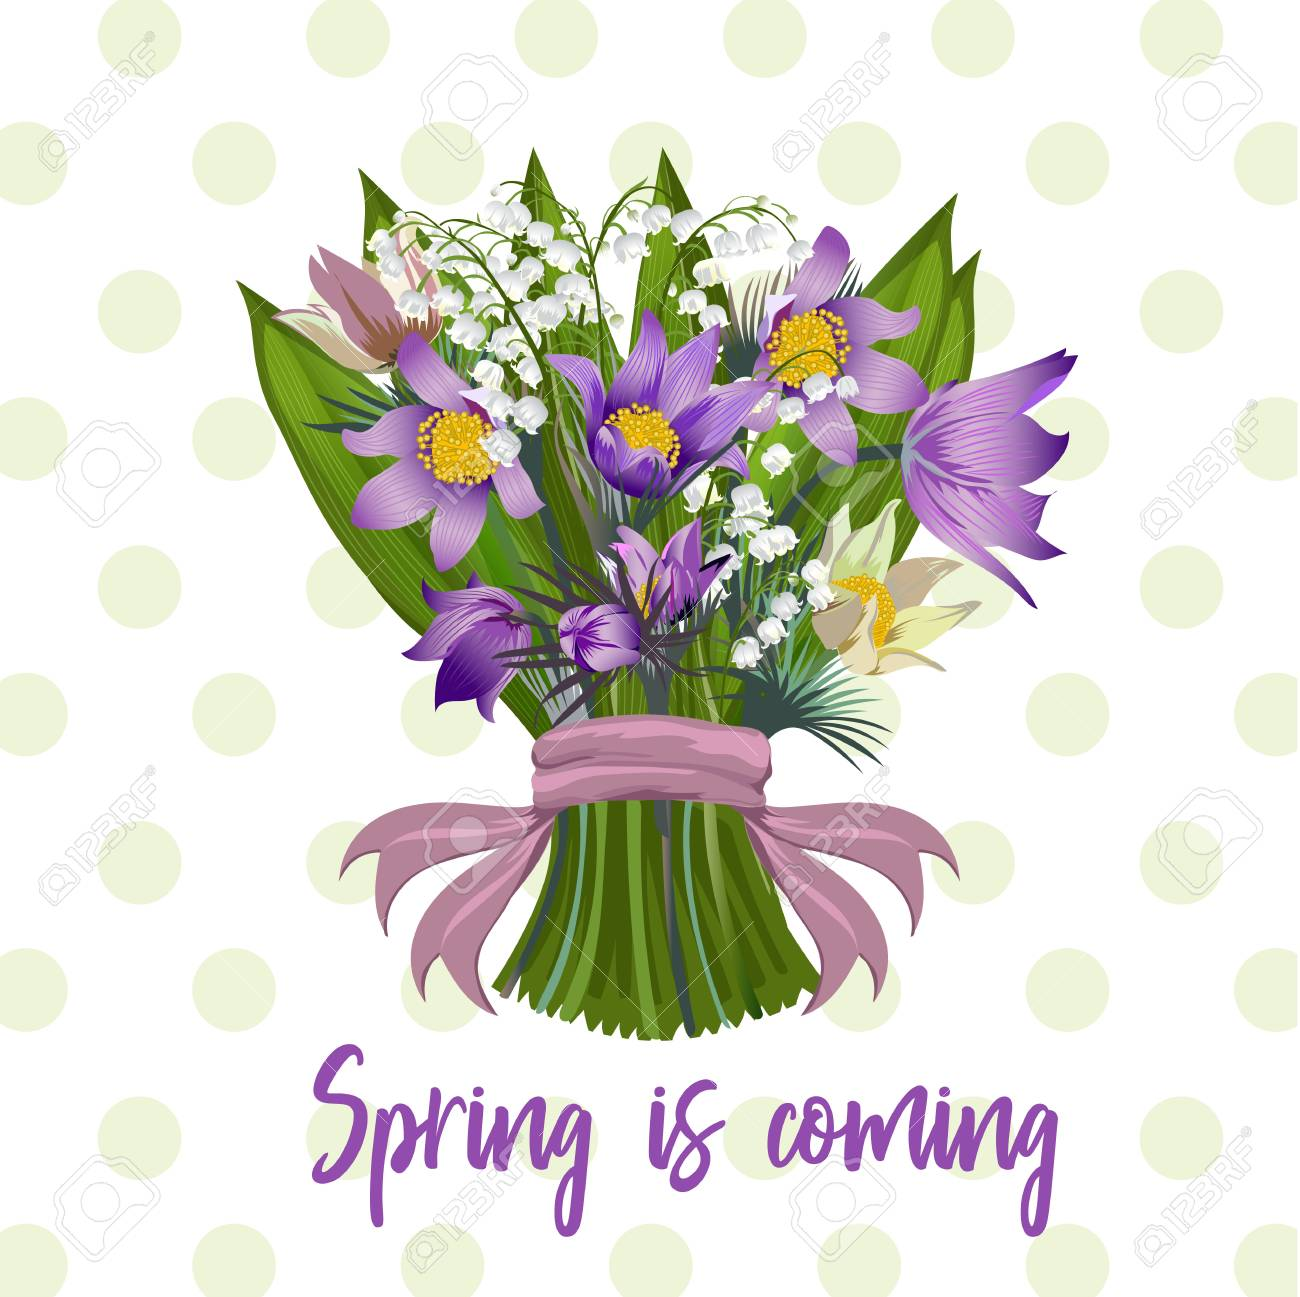 A Bouquet Of Spring Flowers Vector Illustration. Royalty Free ...